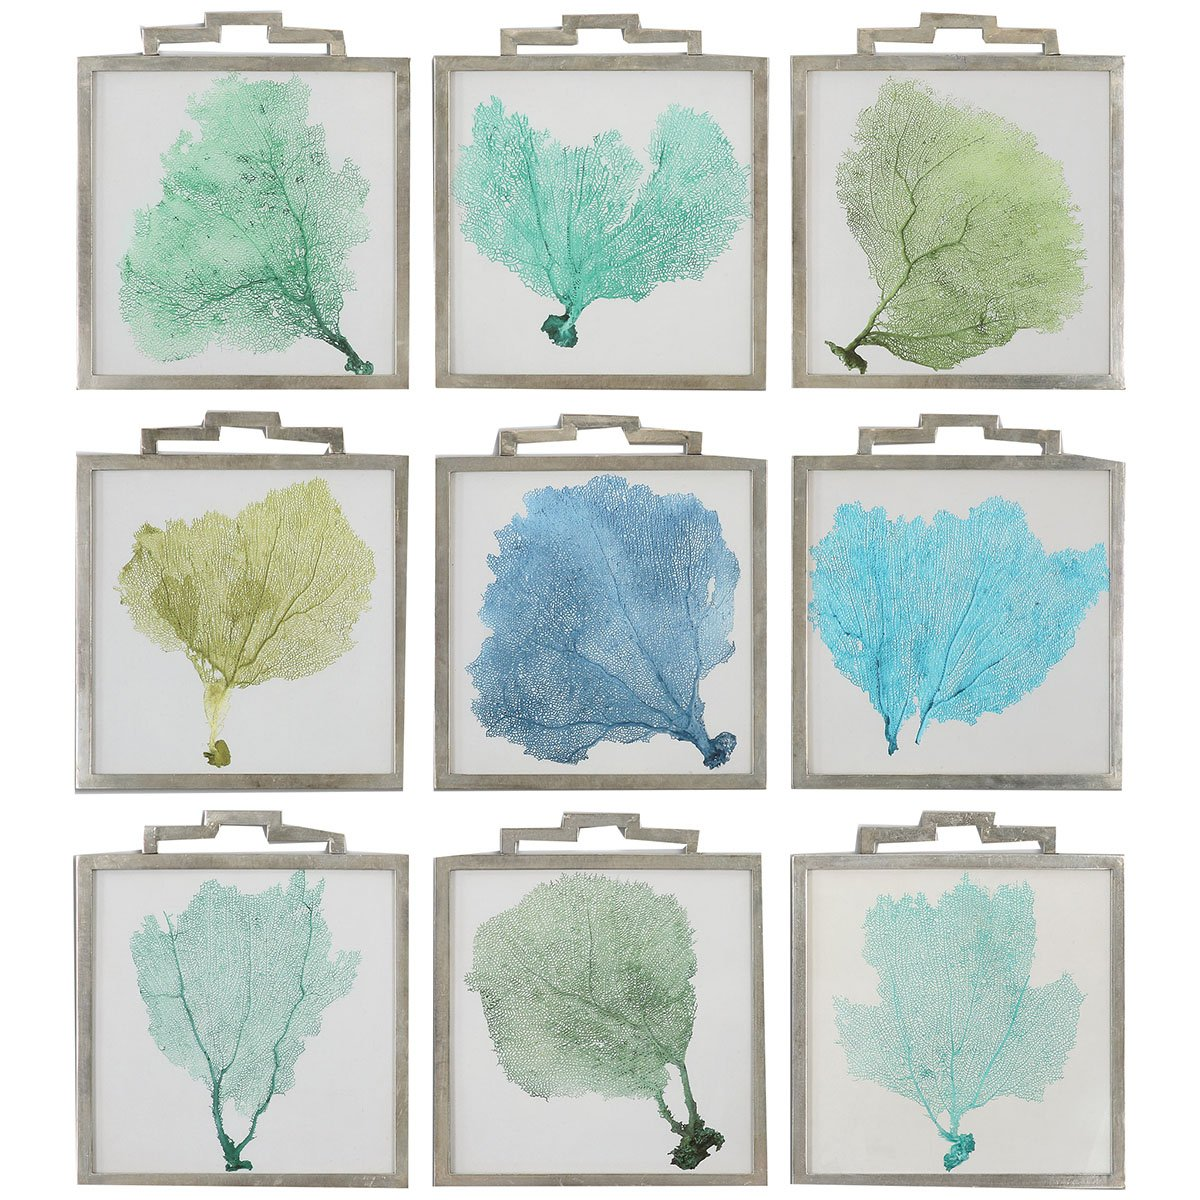 Amazon.com: Uttermost 35239 Sea Fans Framed Art (Set of 9): Posters ...